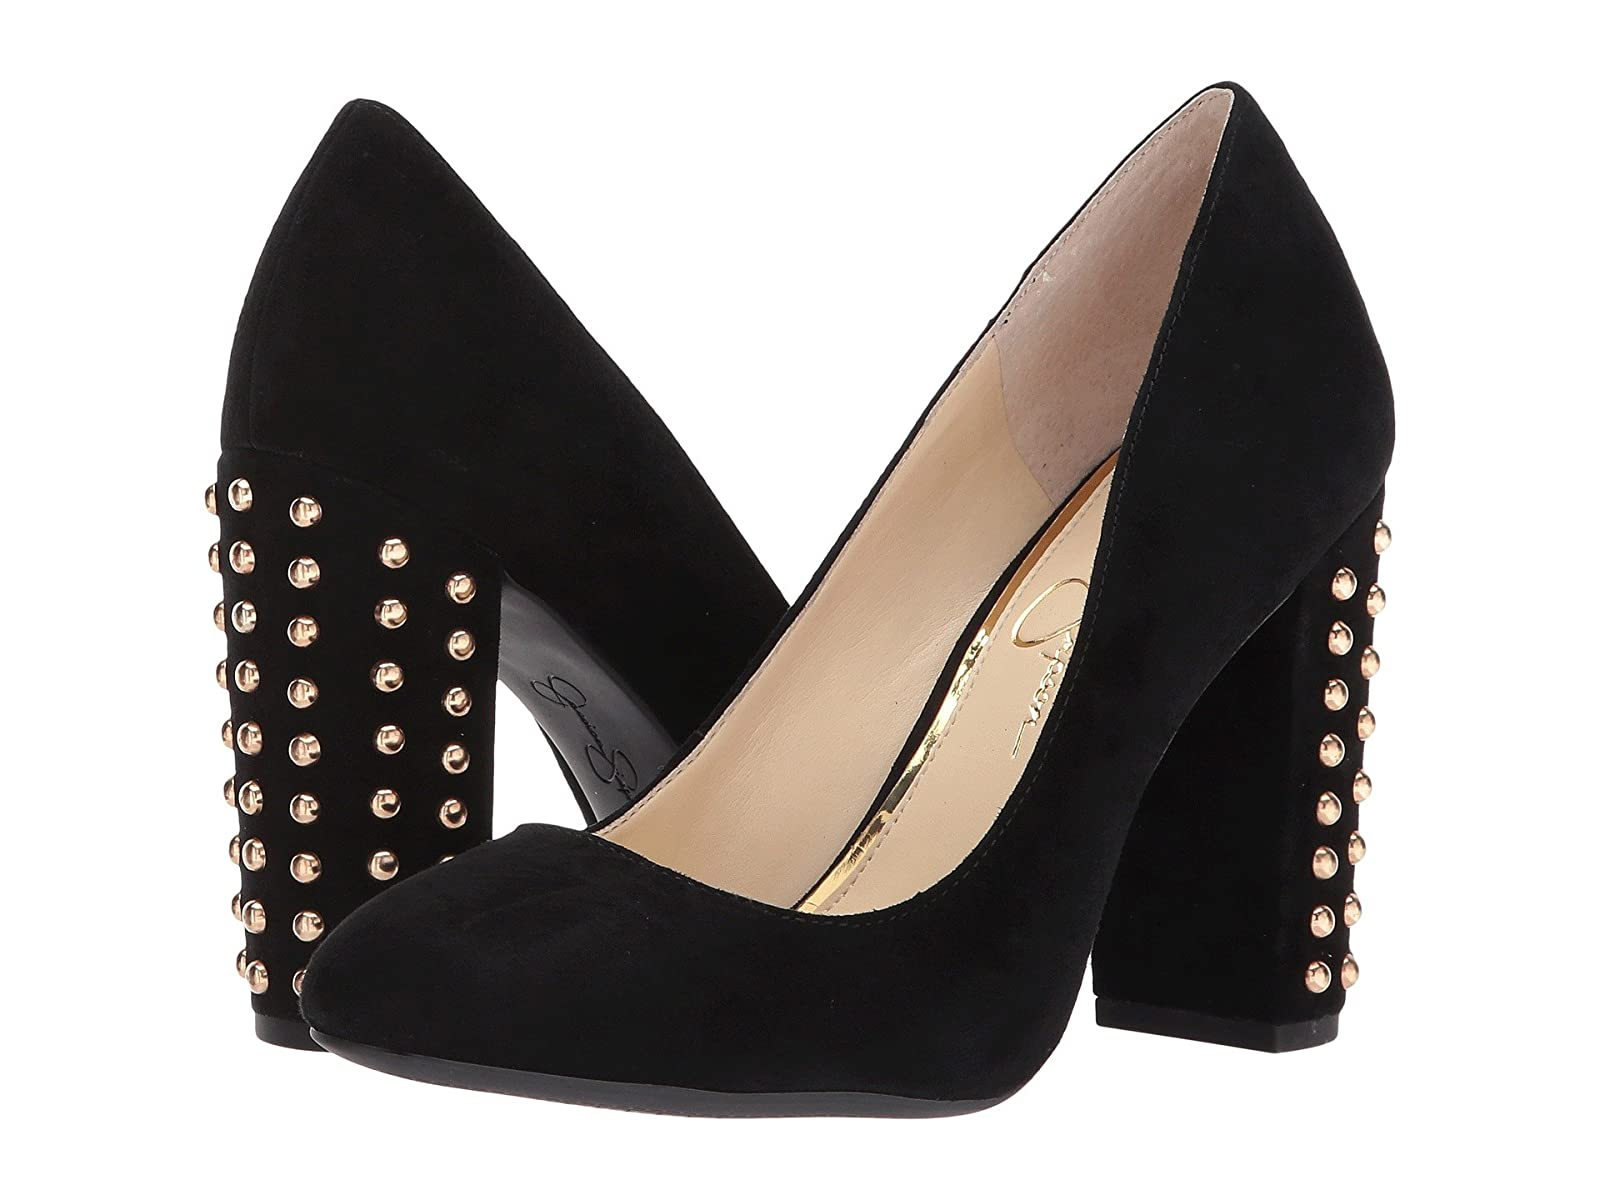 Jessica Simpson BainerCheap and distinctive eye-catching shoes